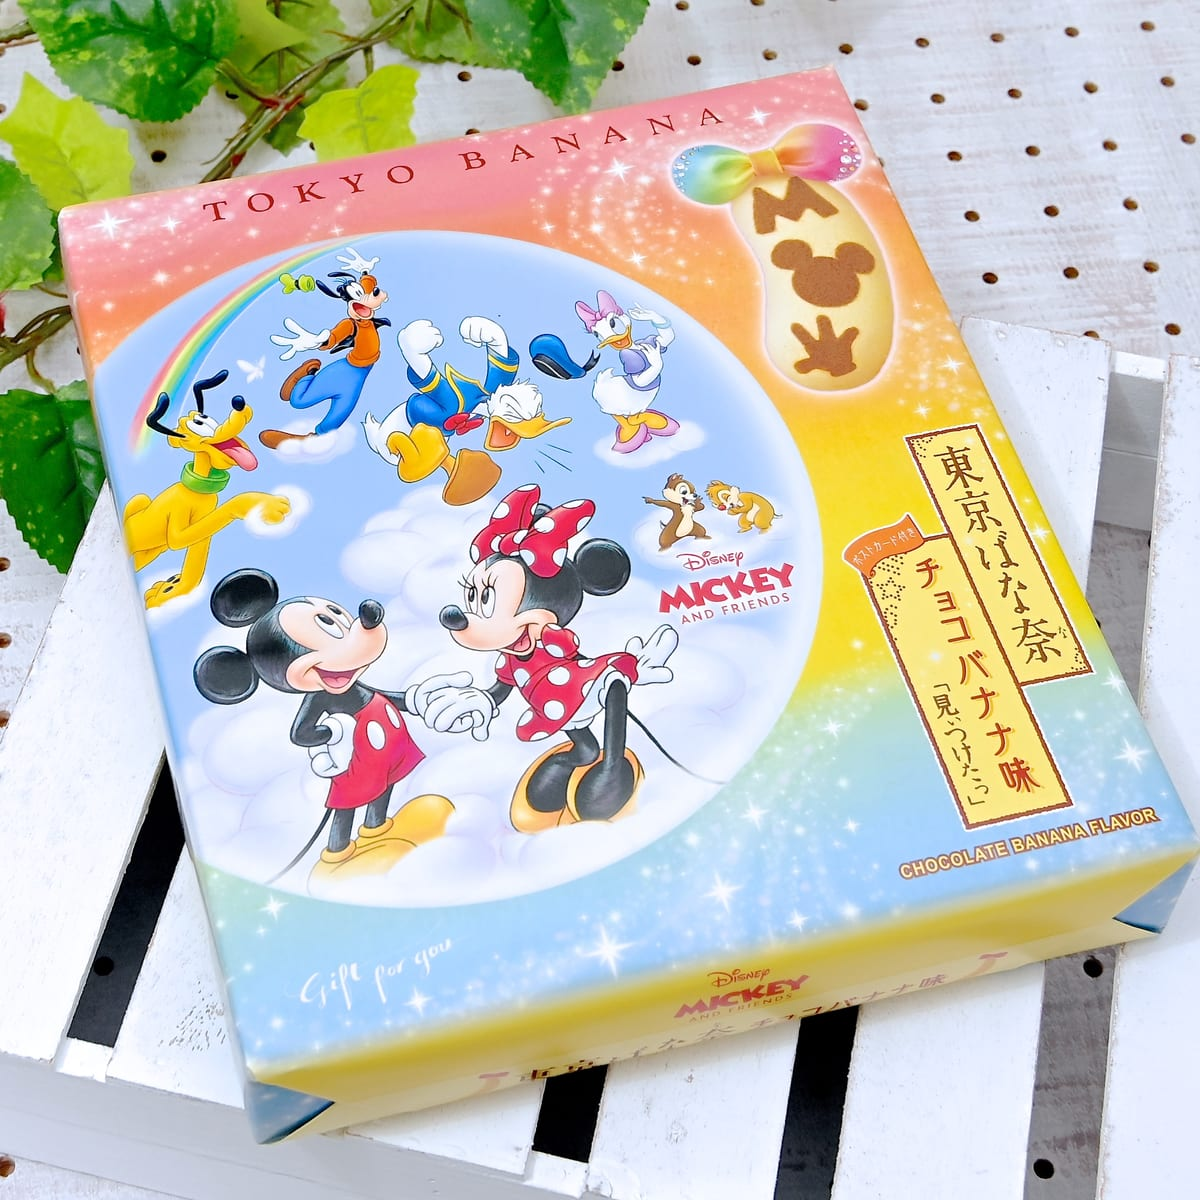 「Disney SWEETS COLLECTION by 東京ばな奈」パッケージ